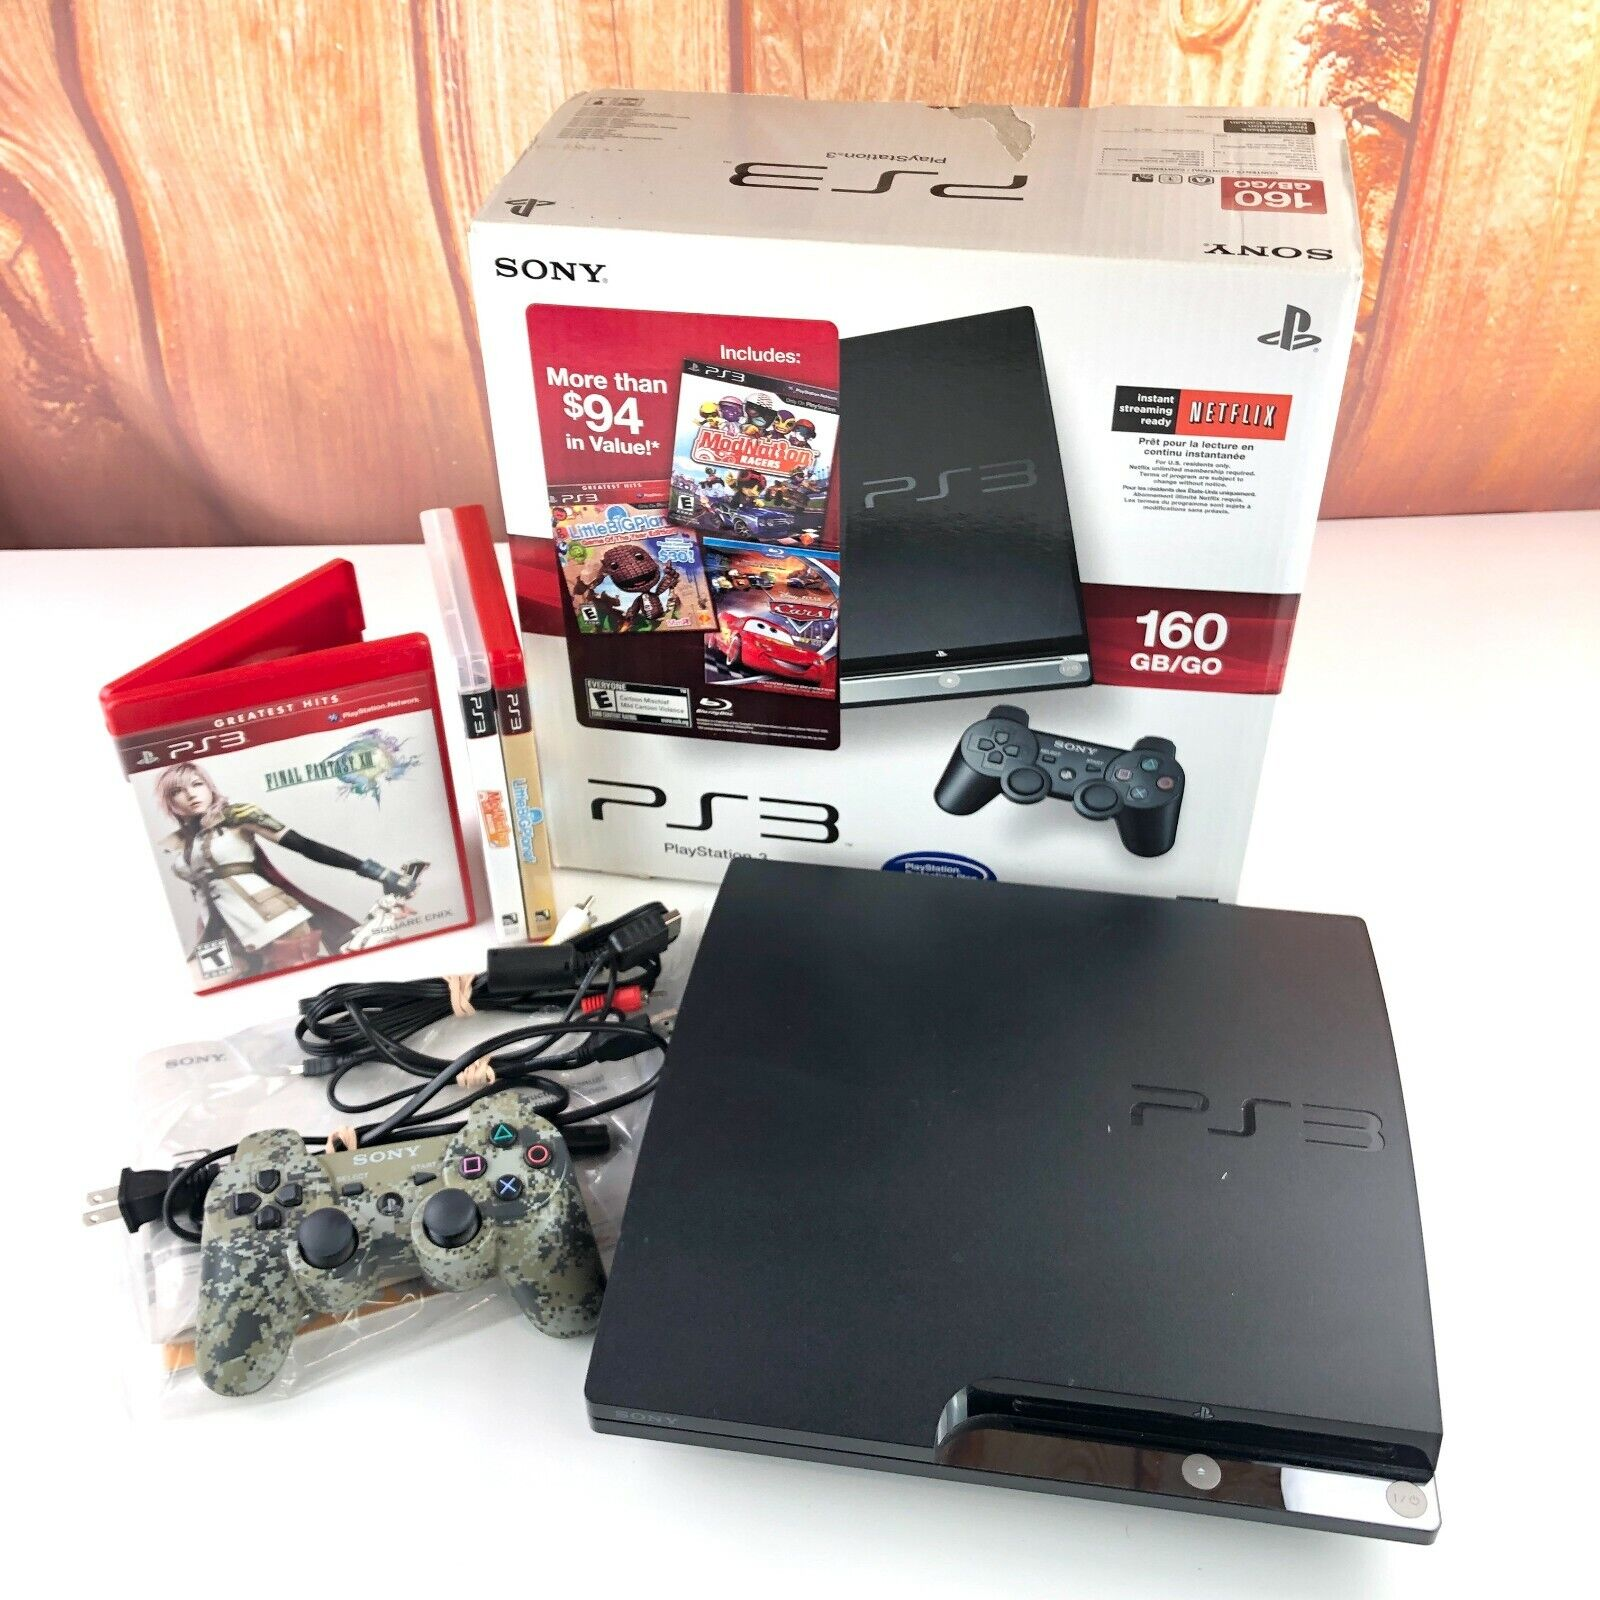 PS3 CECH-2501A Console In Box Matching Serial #'s Little Big Planet Lot 160GB